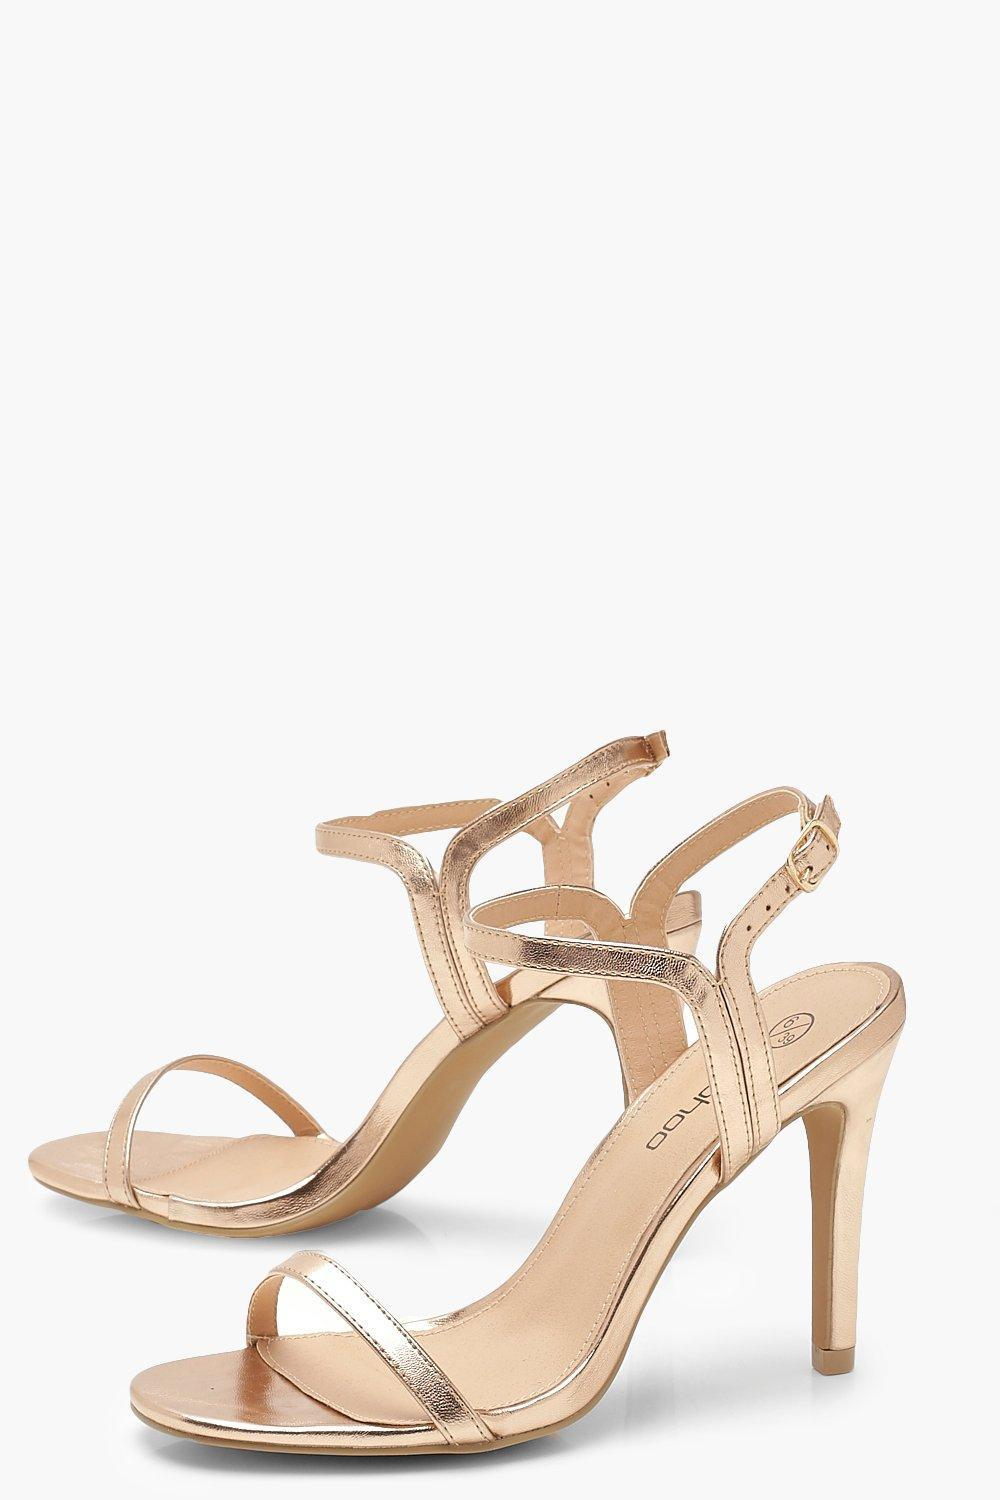 a550ee440fed2 ... Extra Wide Fit 2 Part Heels - Lyst. View fullscreen